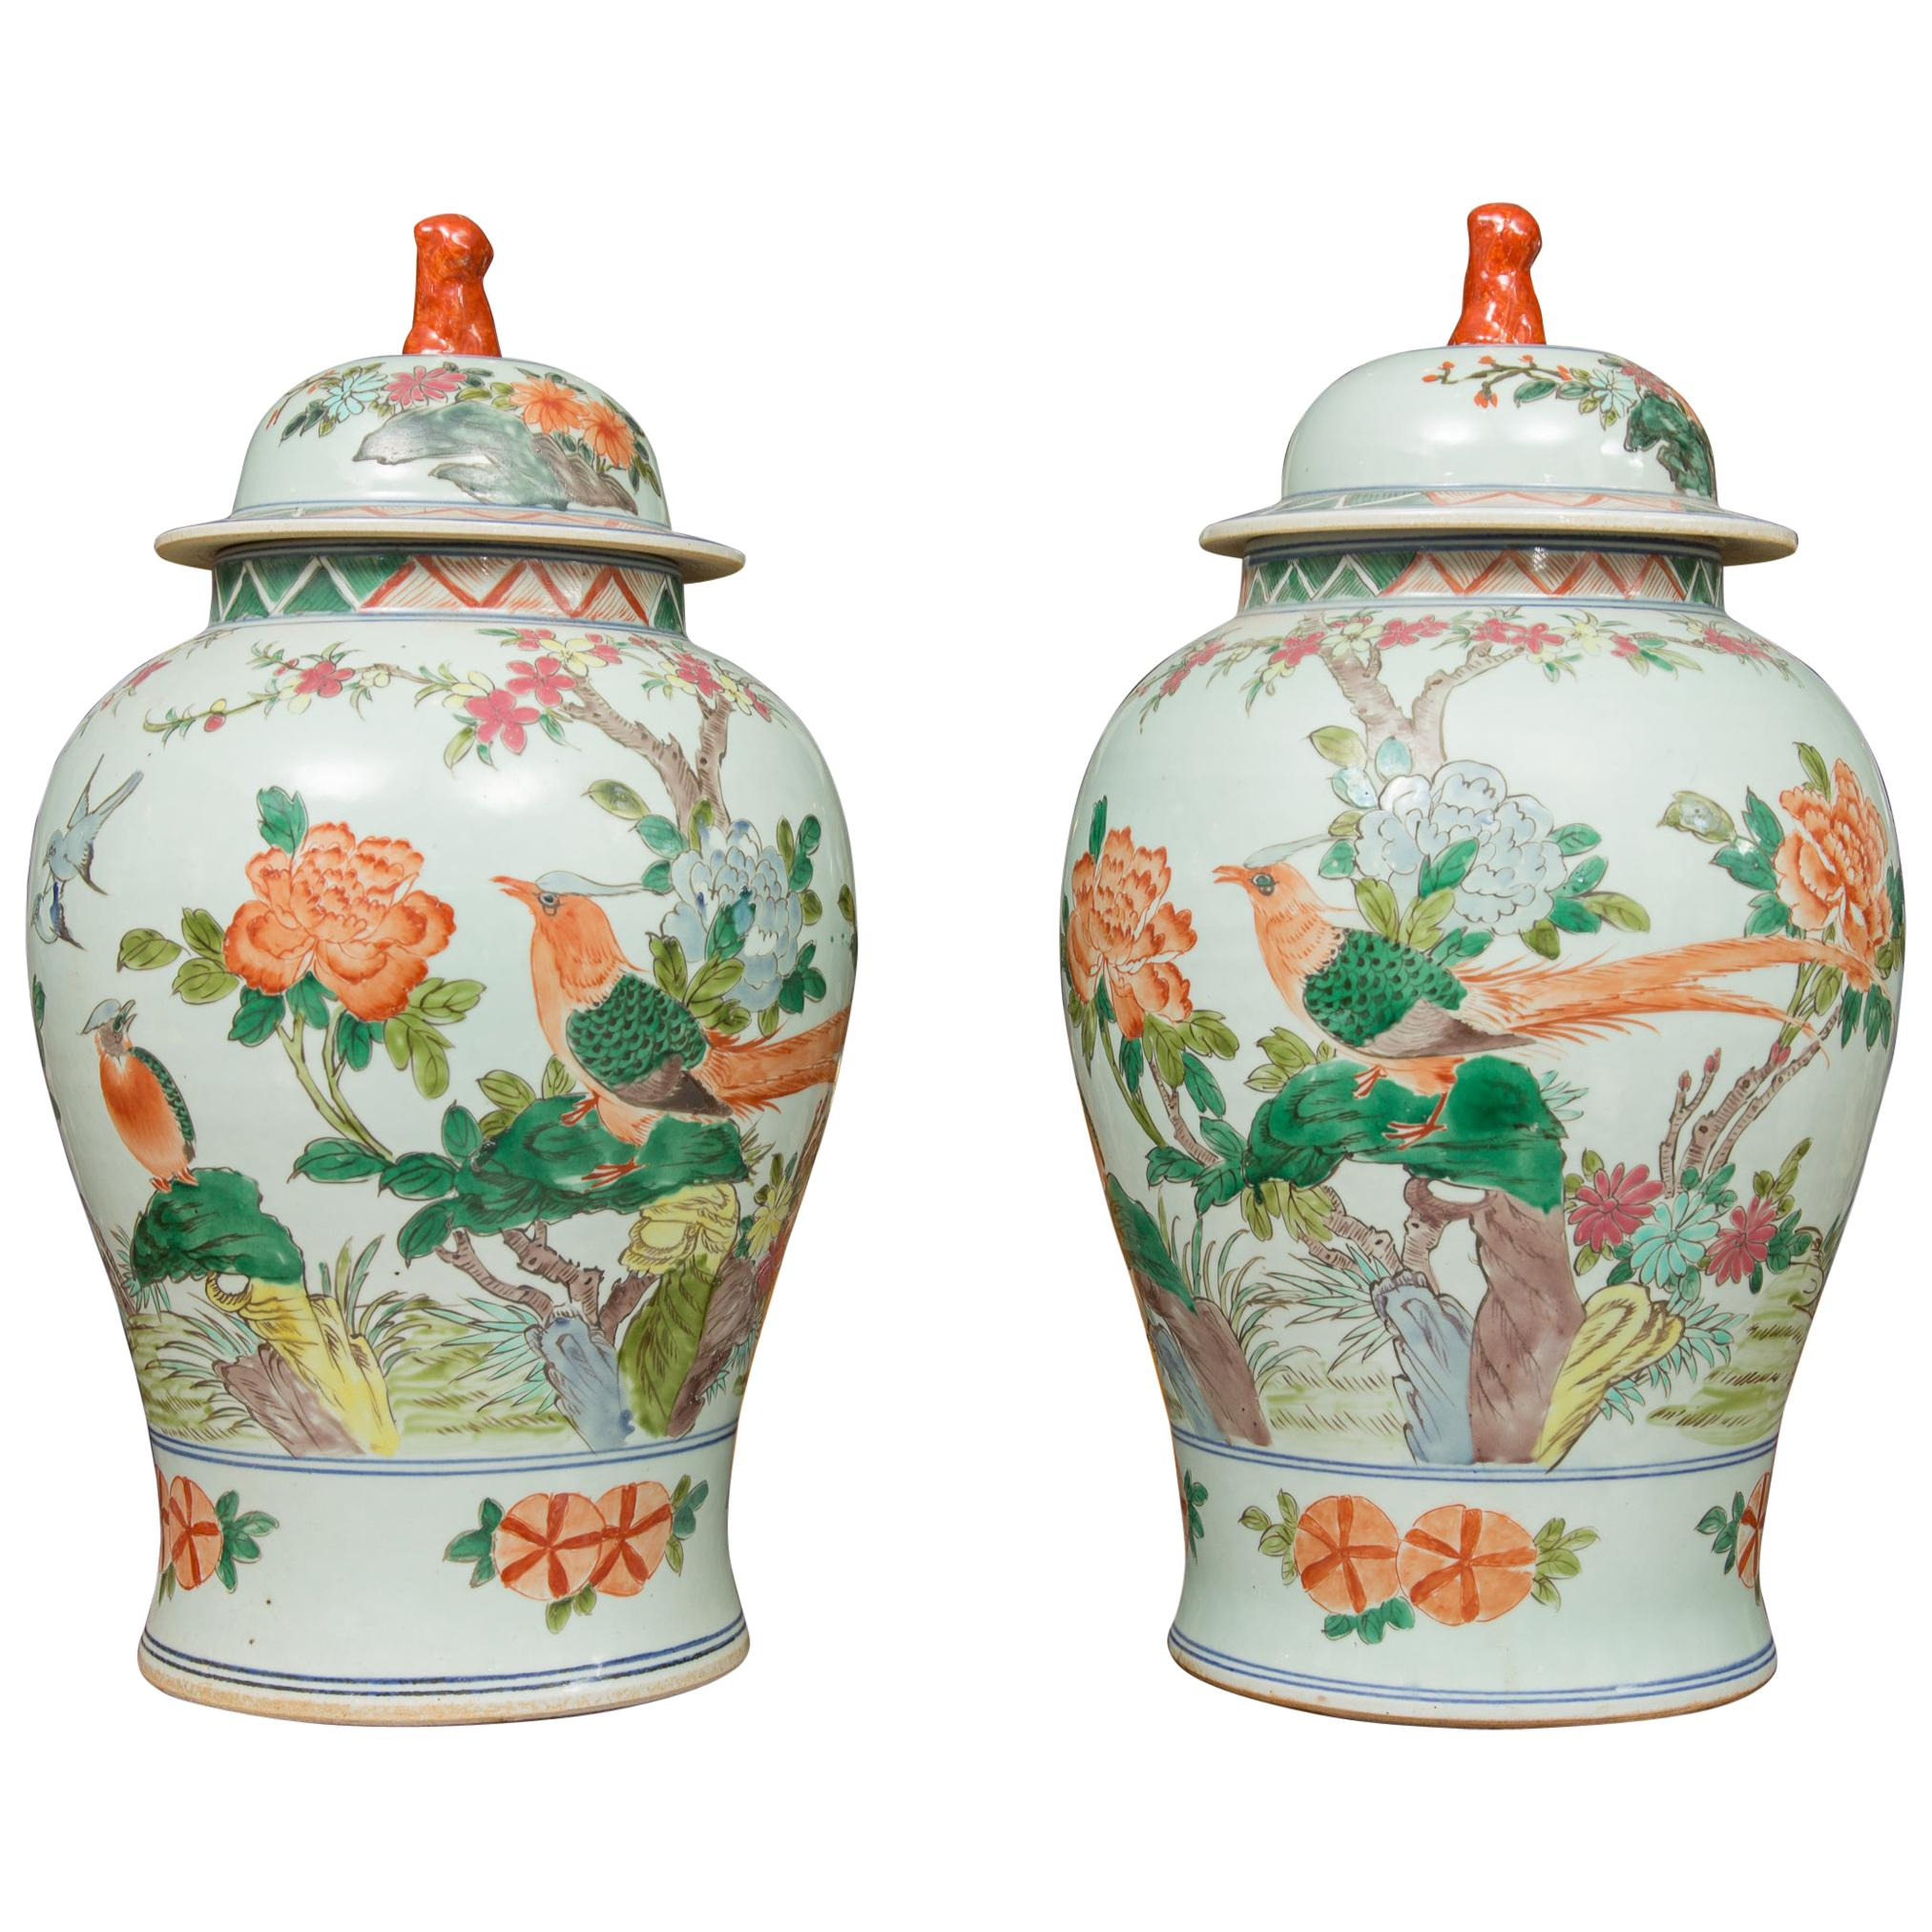 Near Pair of Chinese Lidded Urns